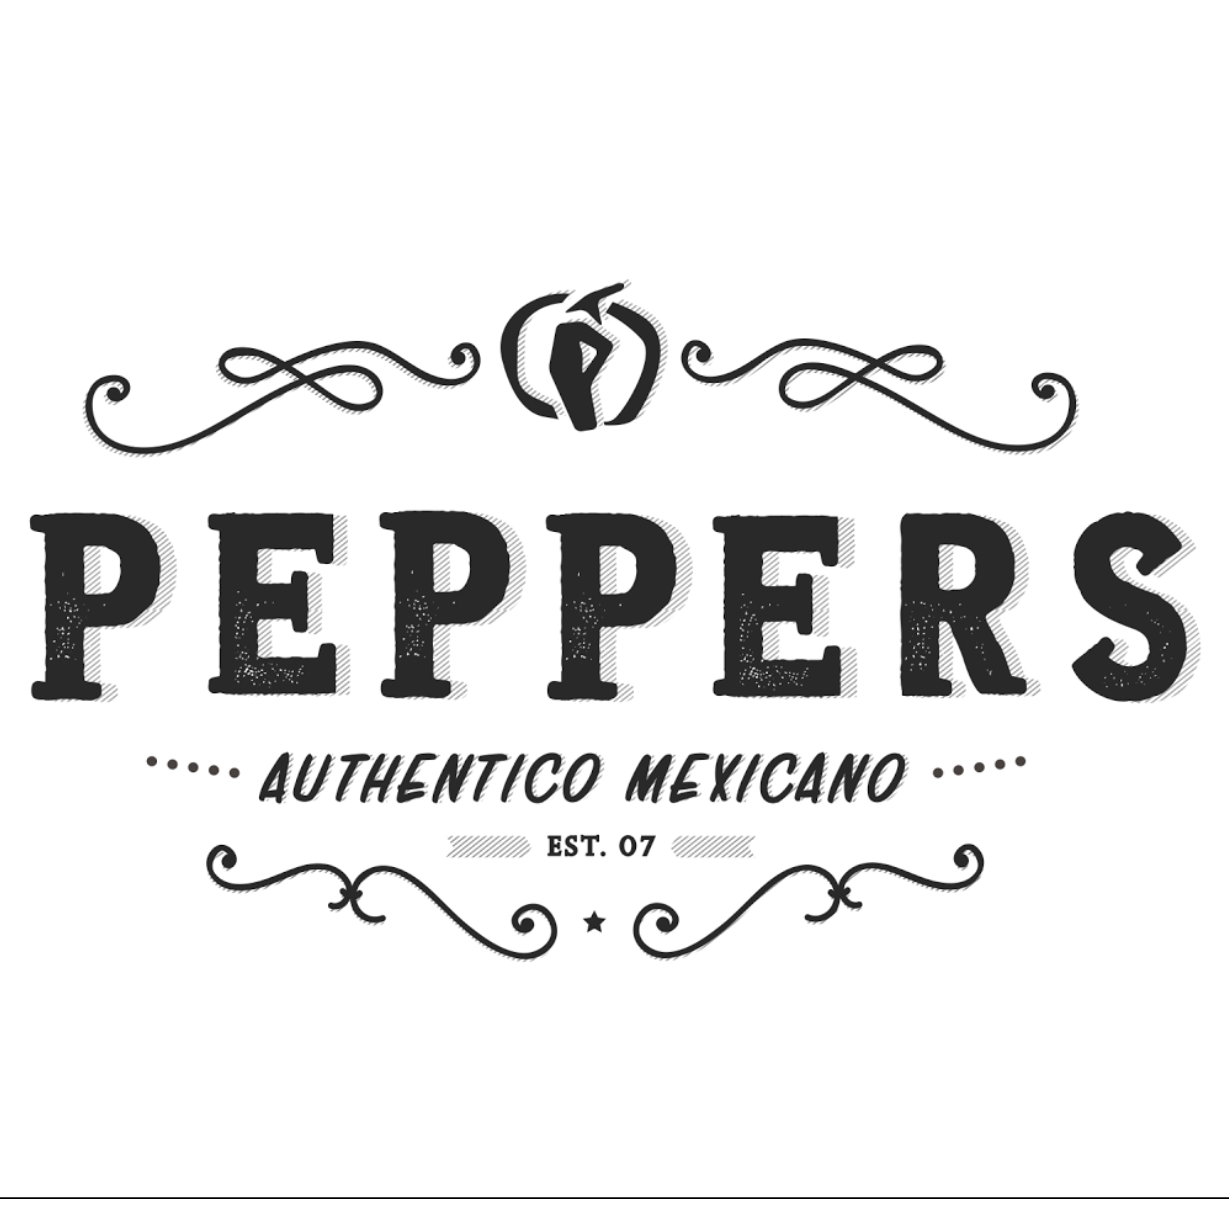 Pepper's Authentic Mexican image 2